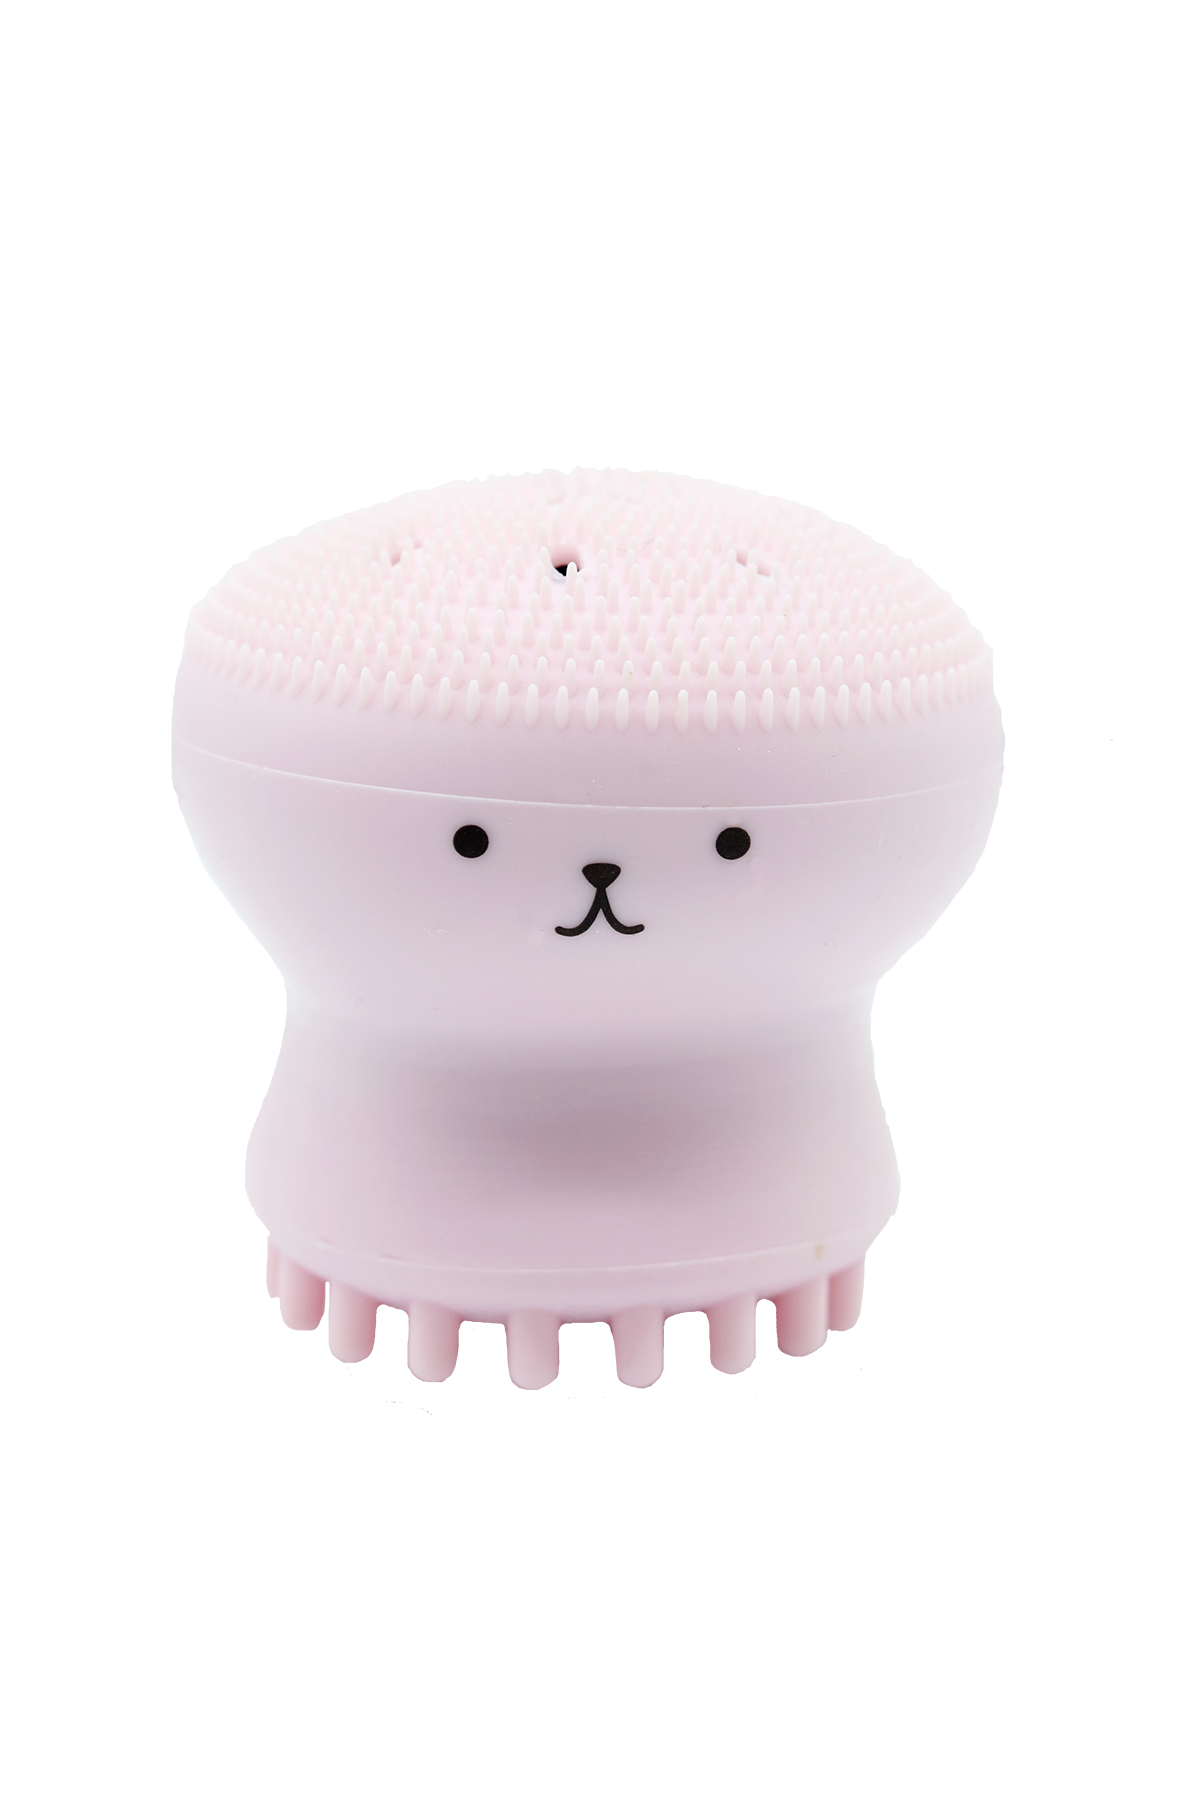 Etude House - Exfoliating Silicon Brush Jellyfish